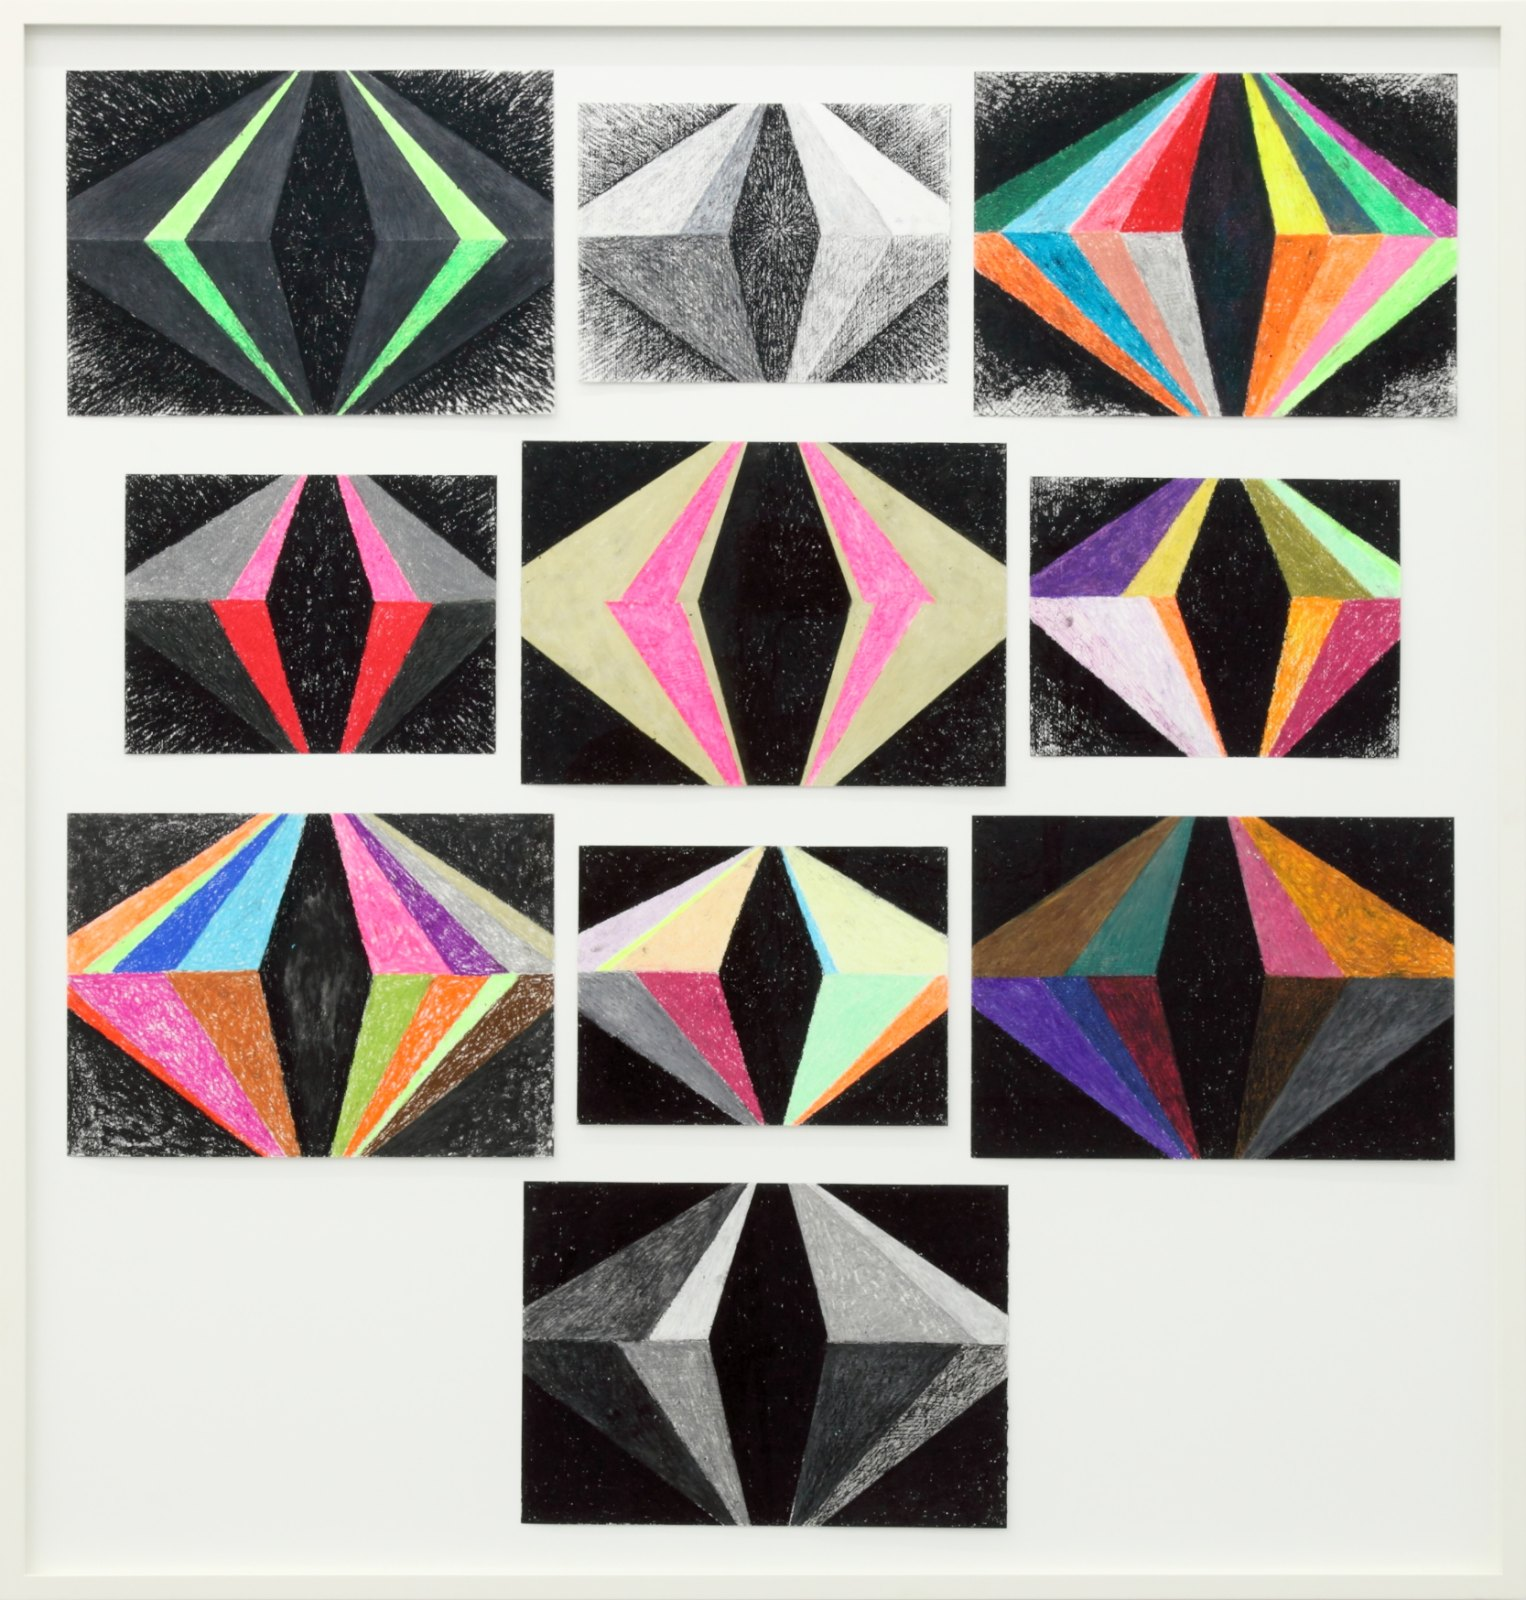 Lars Monrad Vaage, They told the Future Backwards, 2004, Oil pastel on paper, framed, 134 x 126 cm